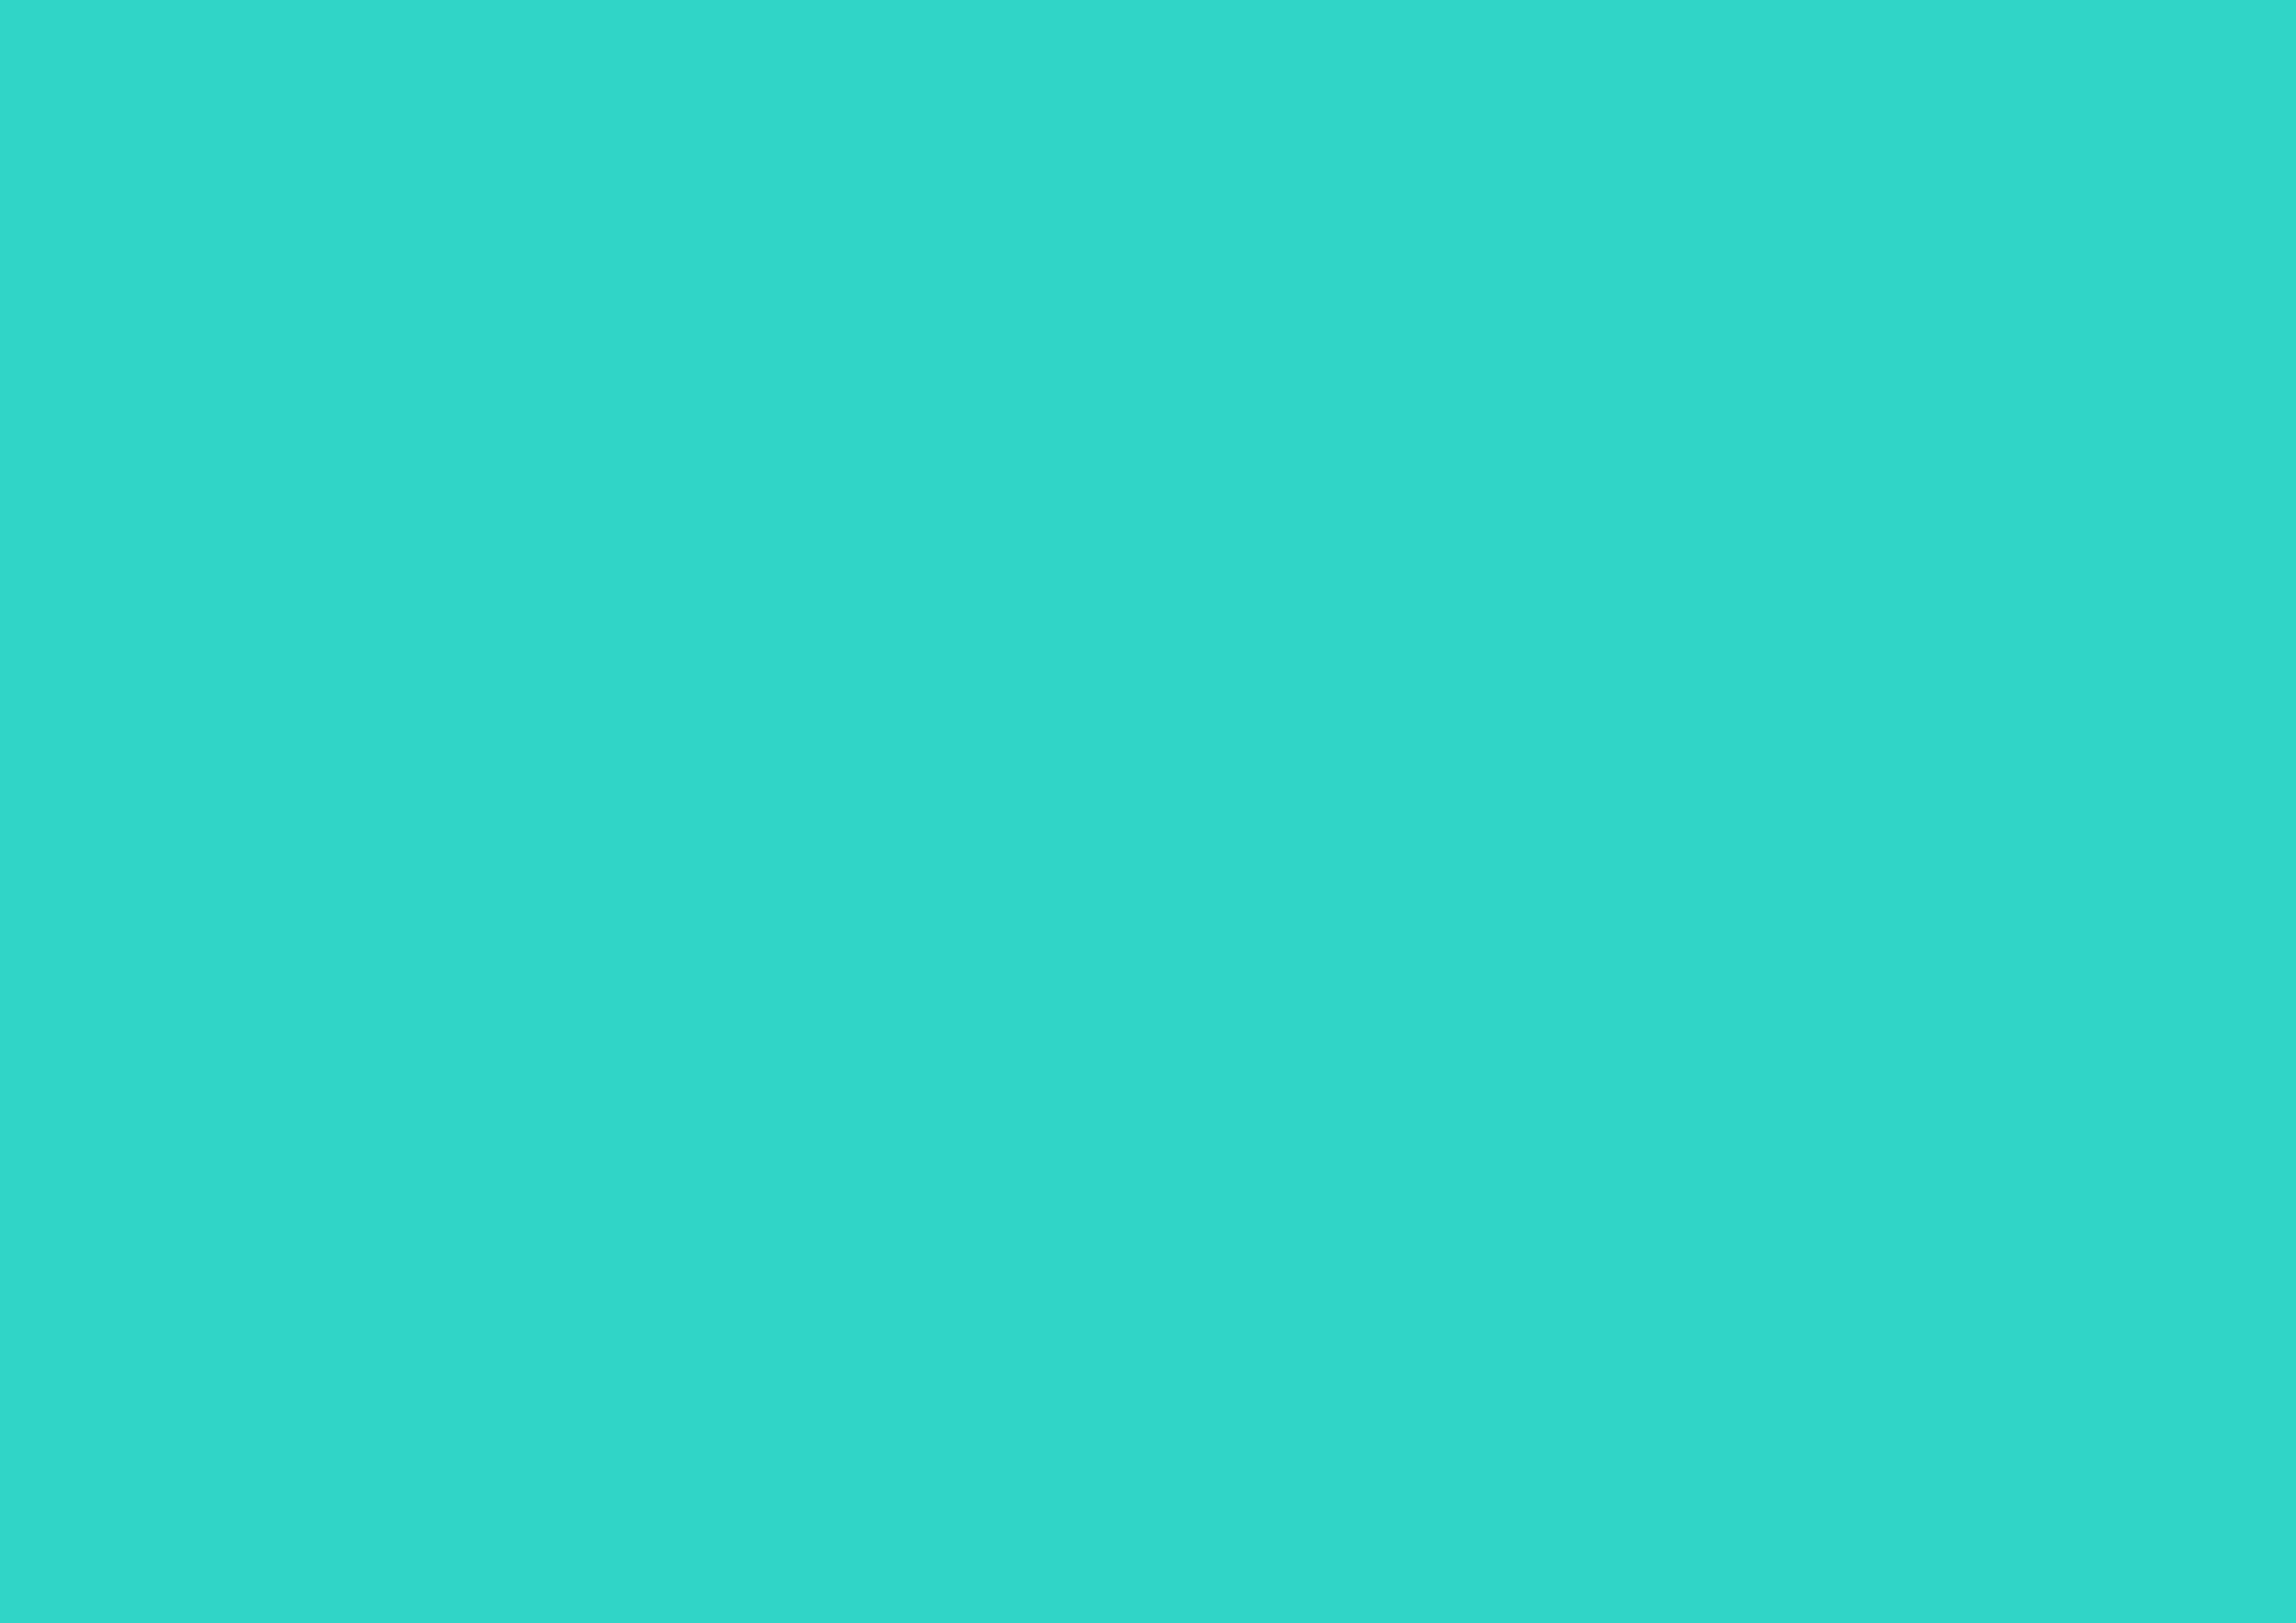 3508x2480 Turquoise Solid Color Background